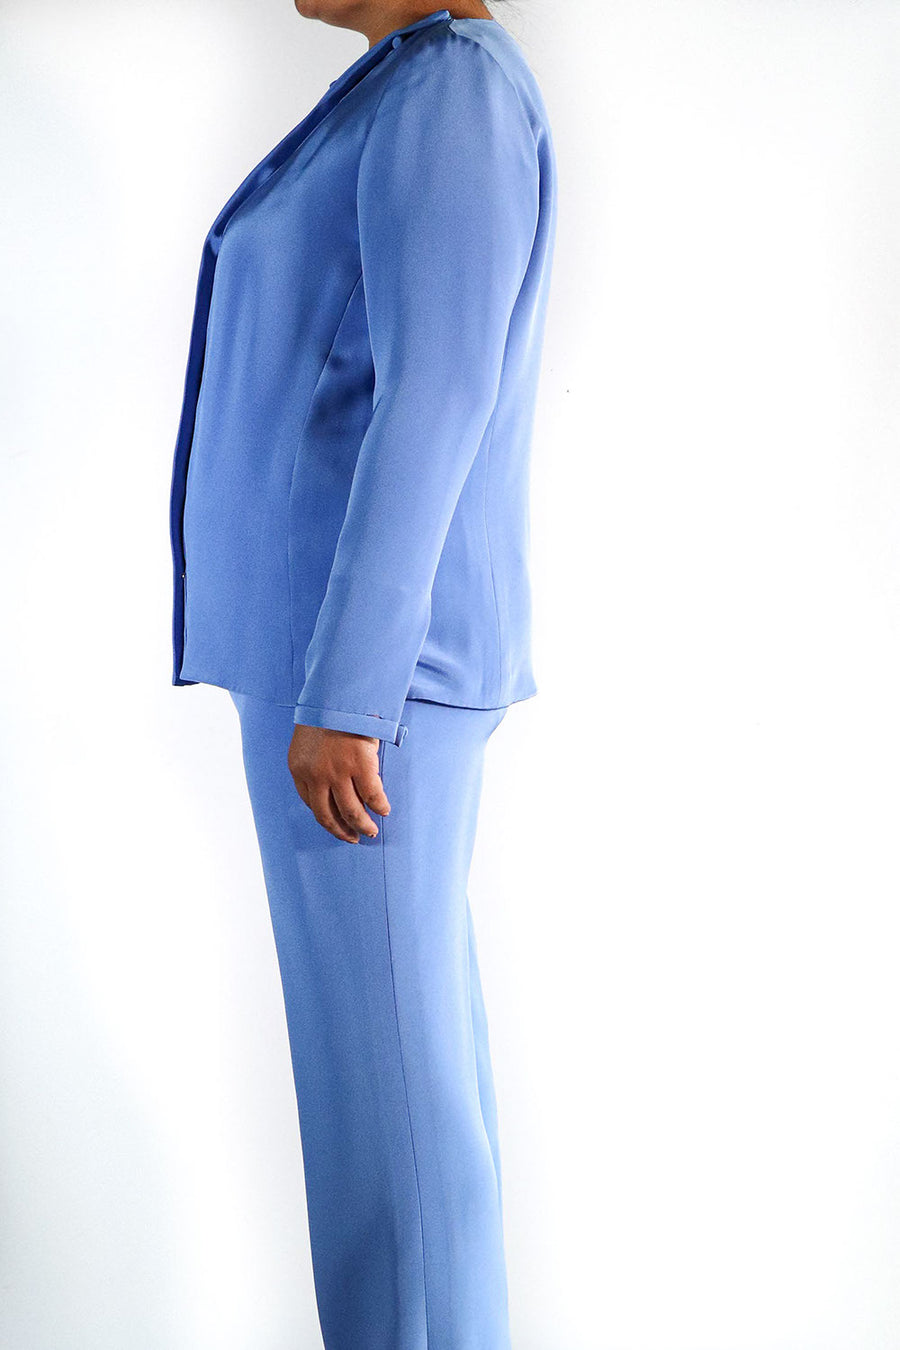 MARK ZUNINO - Periwinkle Suit Set